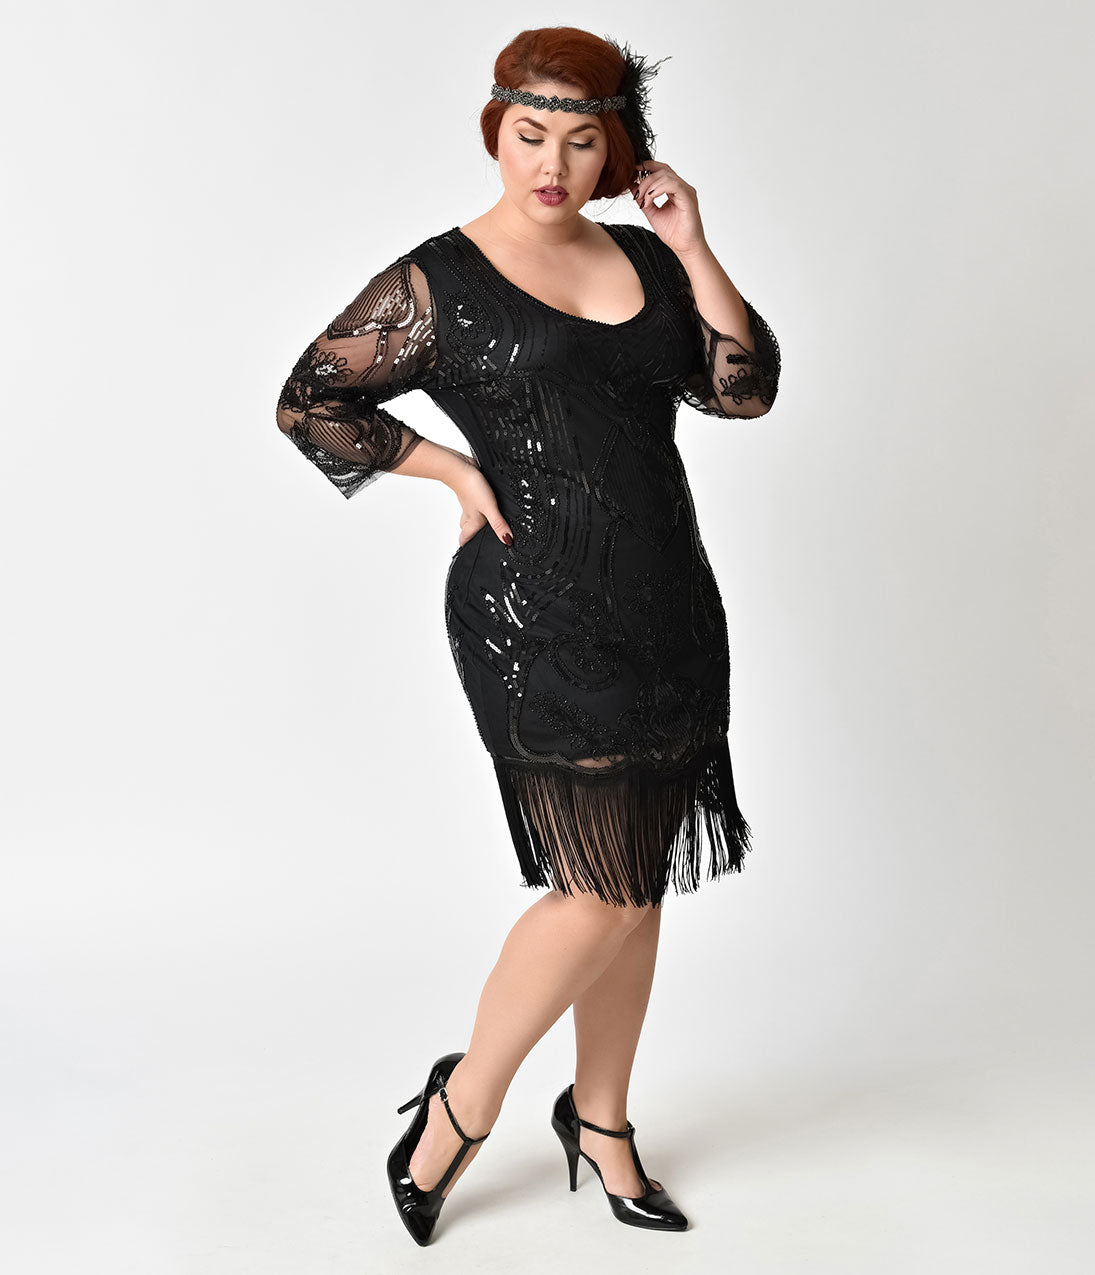 1920s Plus Size Flapper Dresses, Gatsby Dresses, Flapper Costumes Unique Vintage Plus Size Black Beaded  Sequin Margaux Sleeved Fringe Flapper Dress $110.00 AT vintagedancer.com